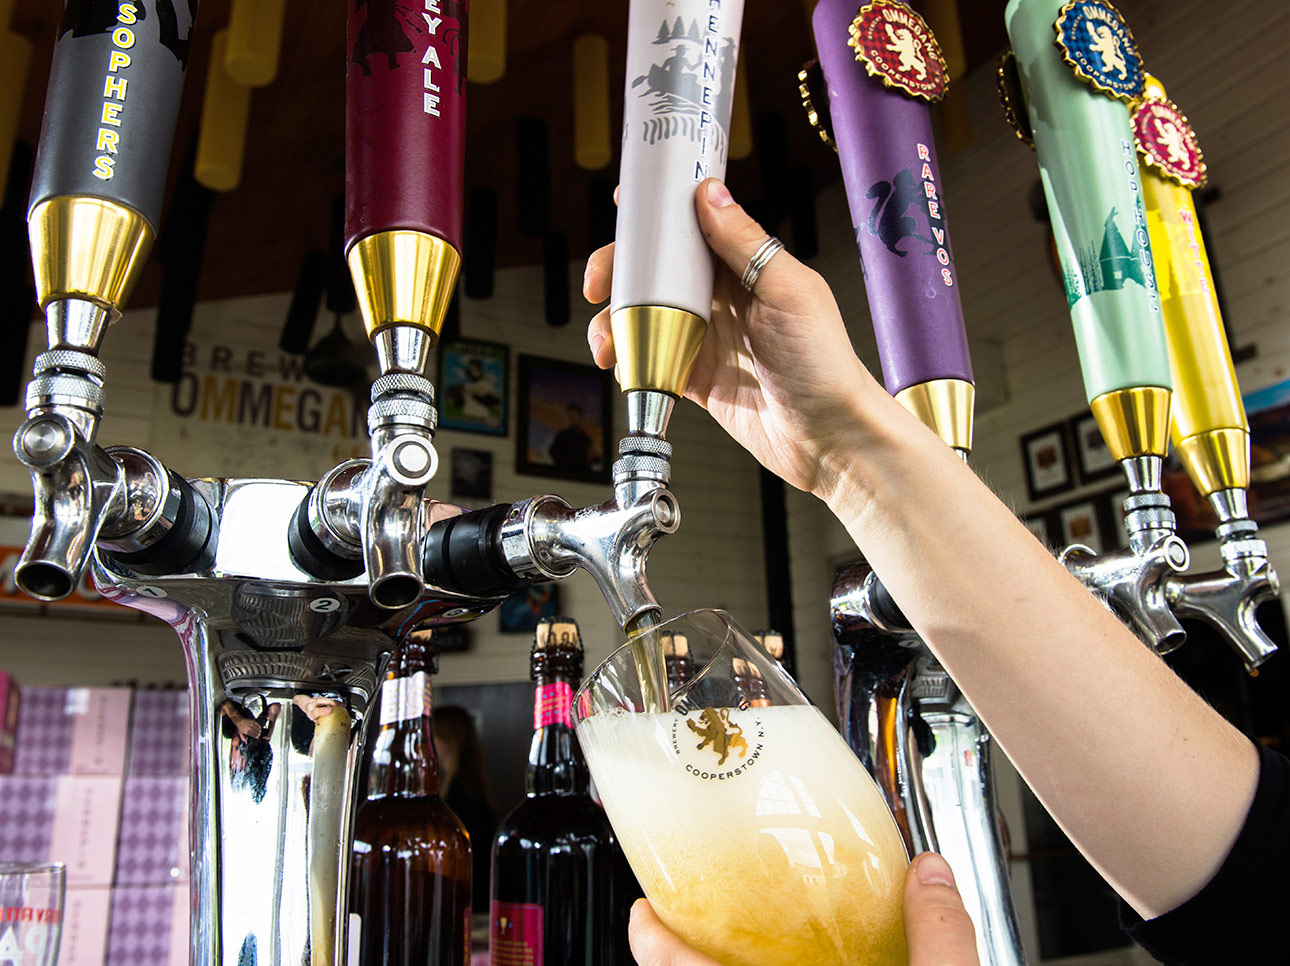 A beer brewed at the Ommegang Brewery in Cooperstown, New York being poured from tap.